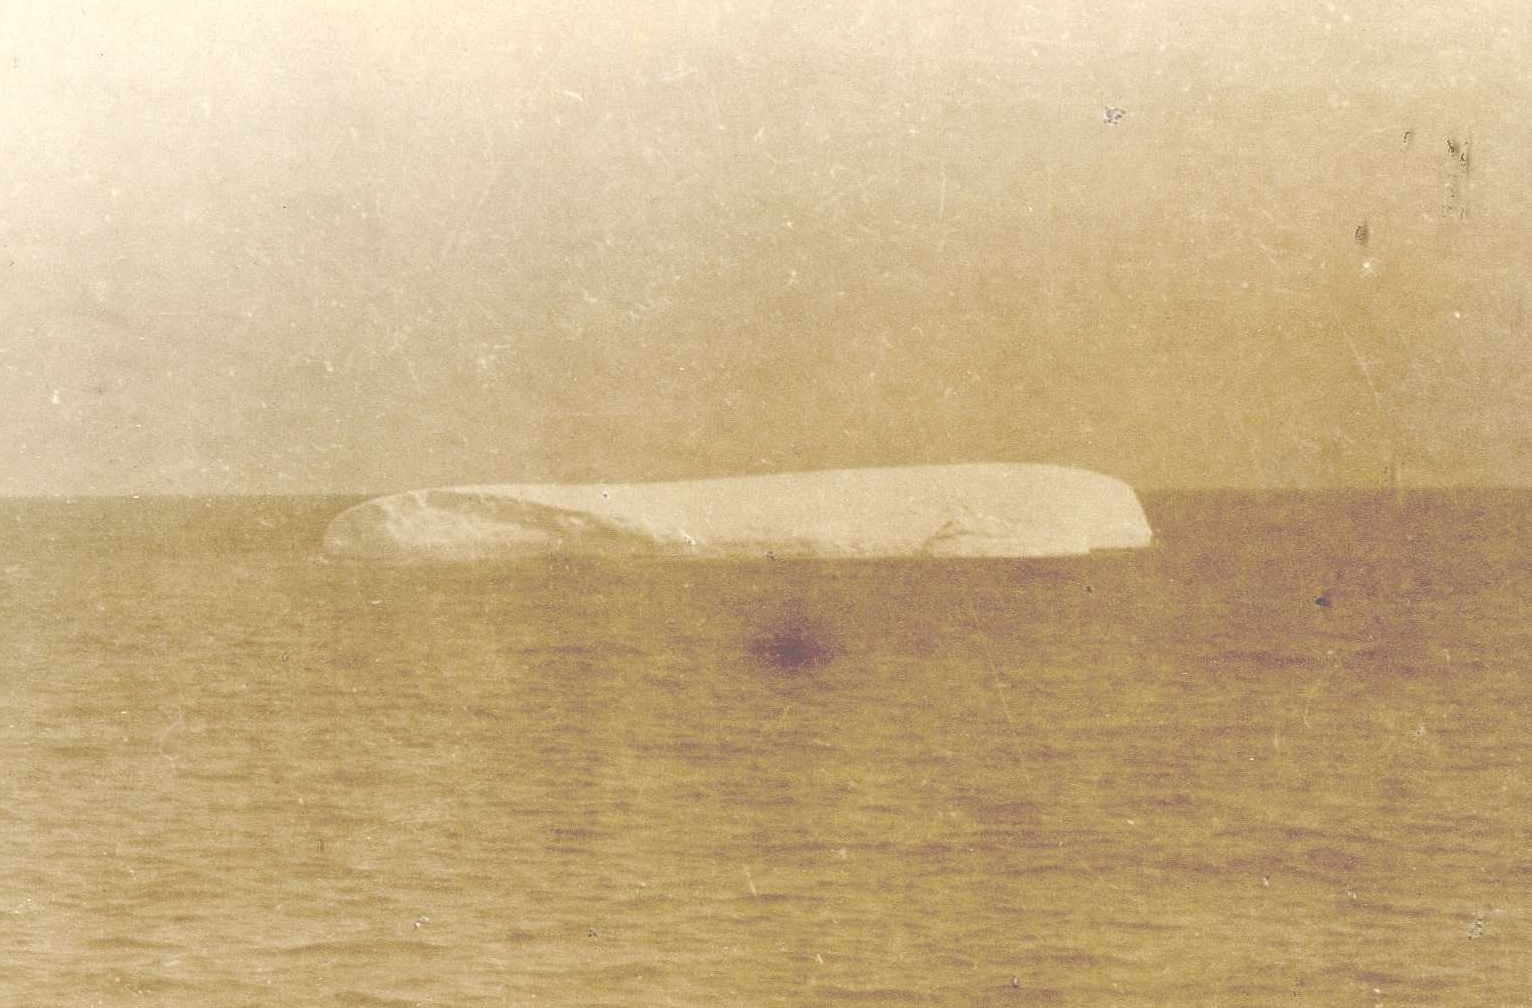 A Photograph of an Iceberg Floating Near the Site of the Titanic Sinking